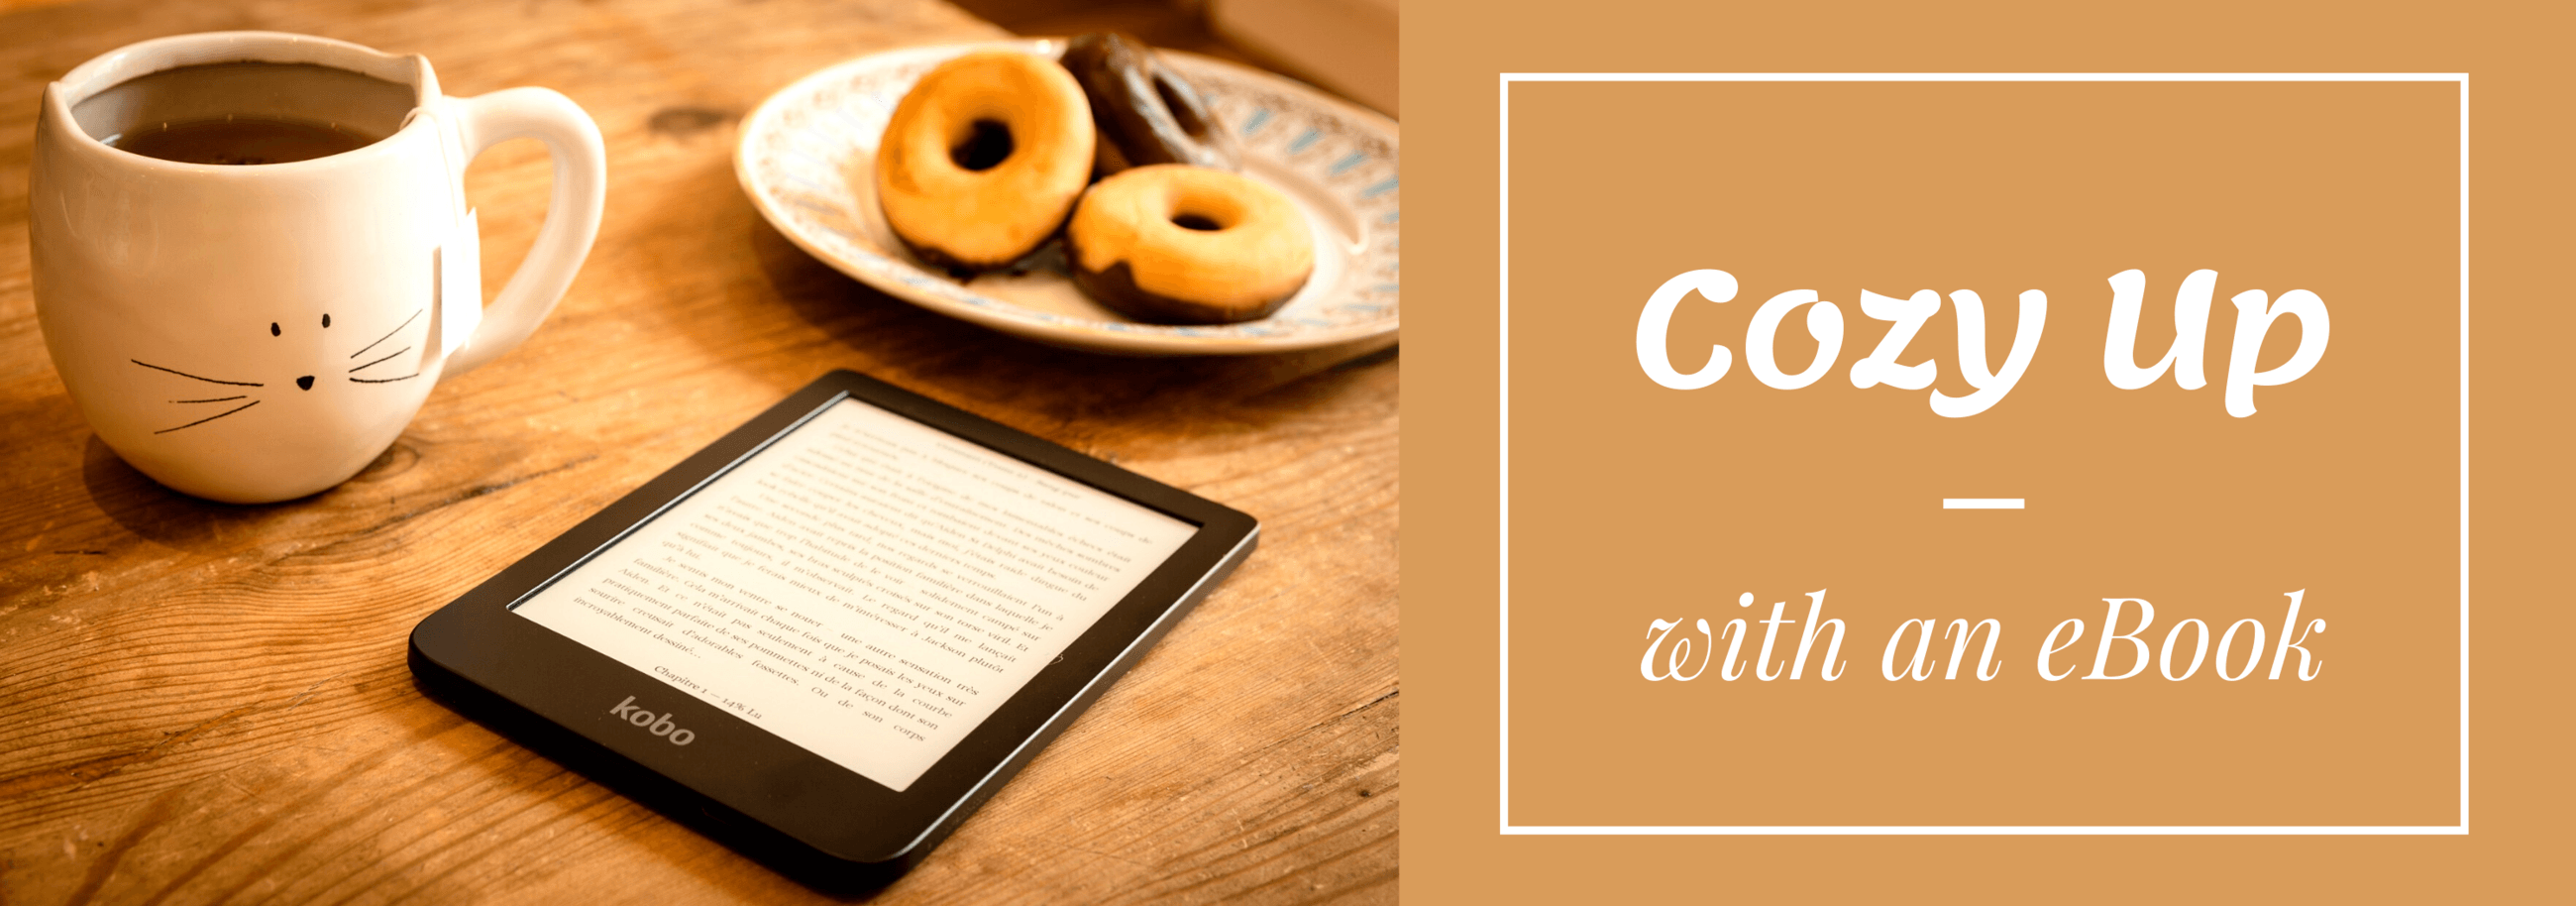 Cozy Up With an eBook